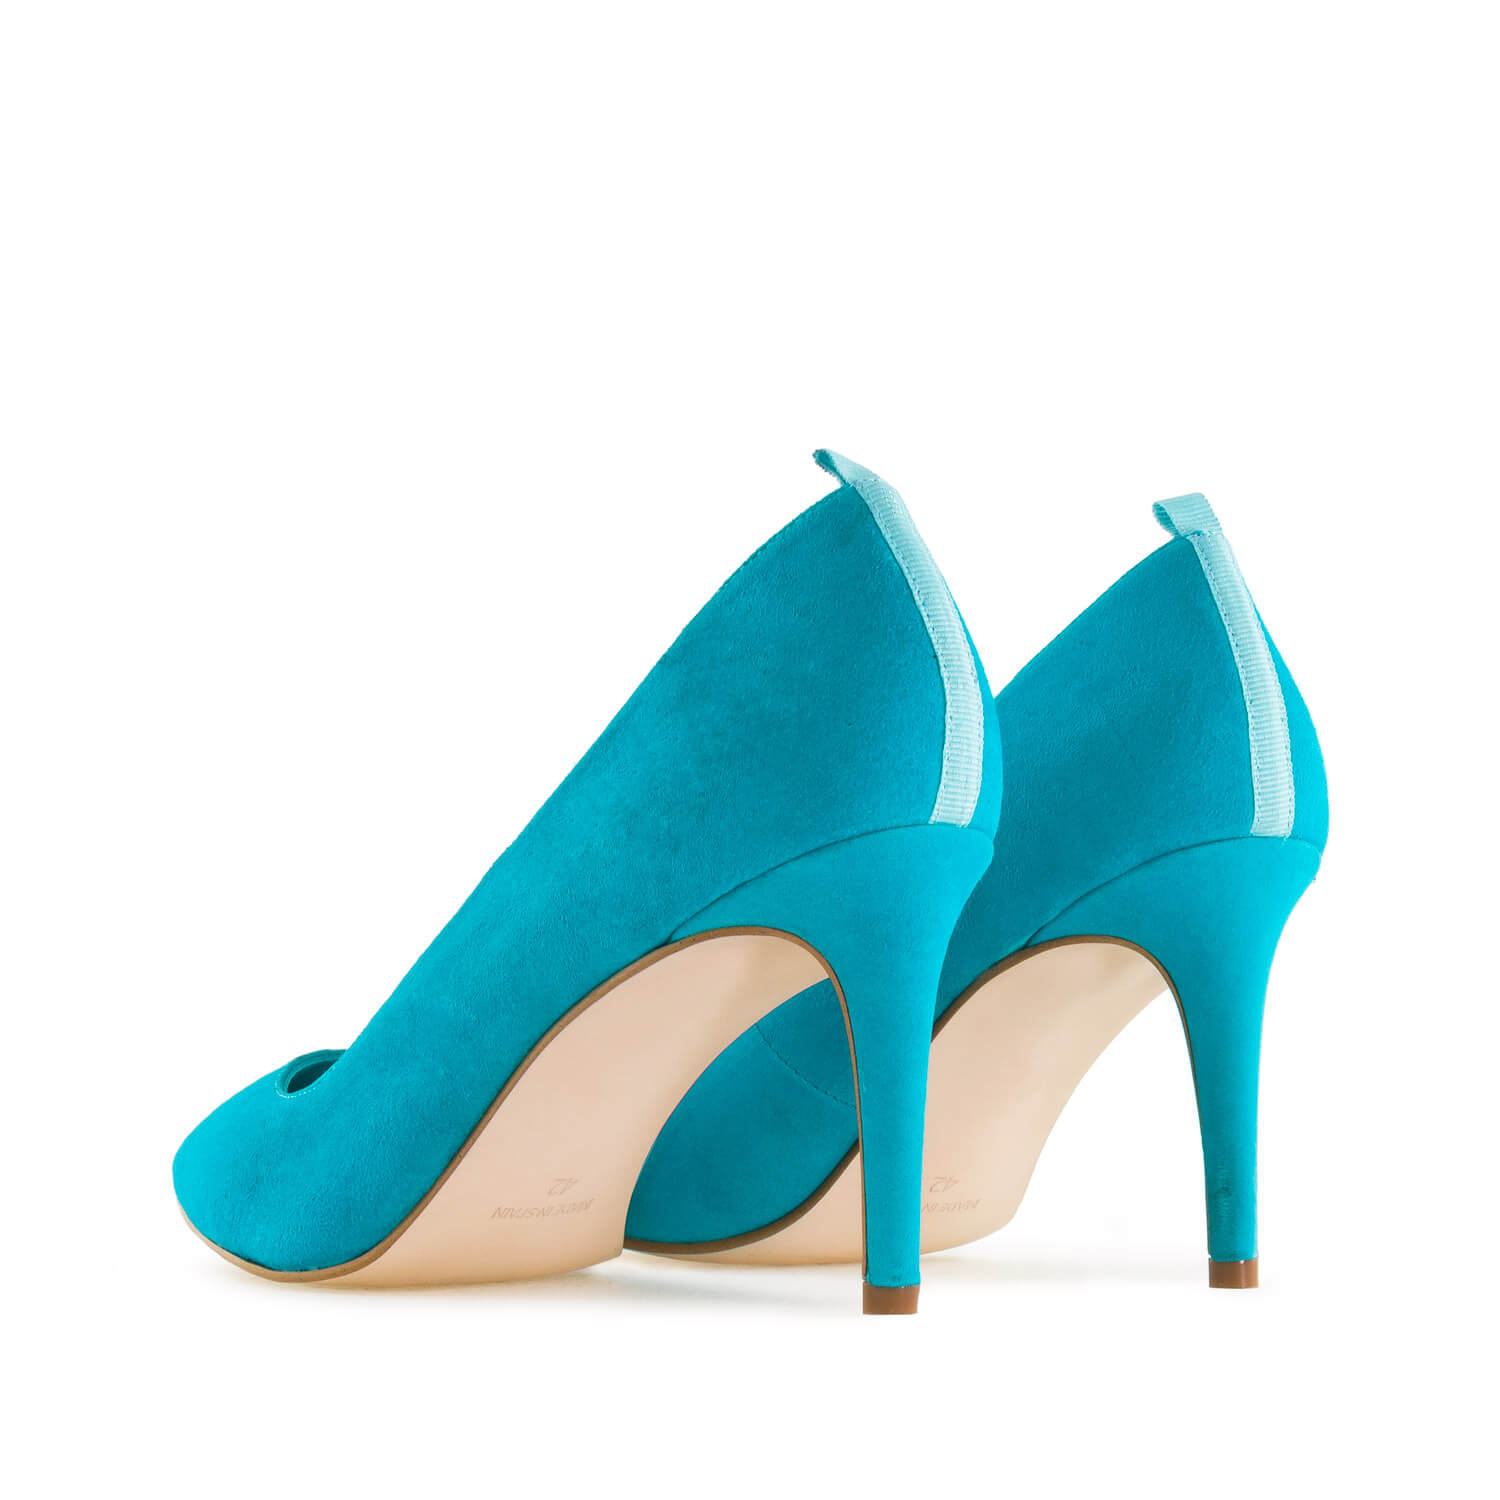 Stilettos in Turquoise Suede Leather